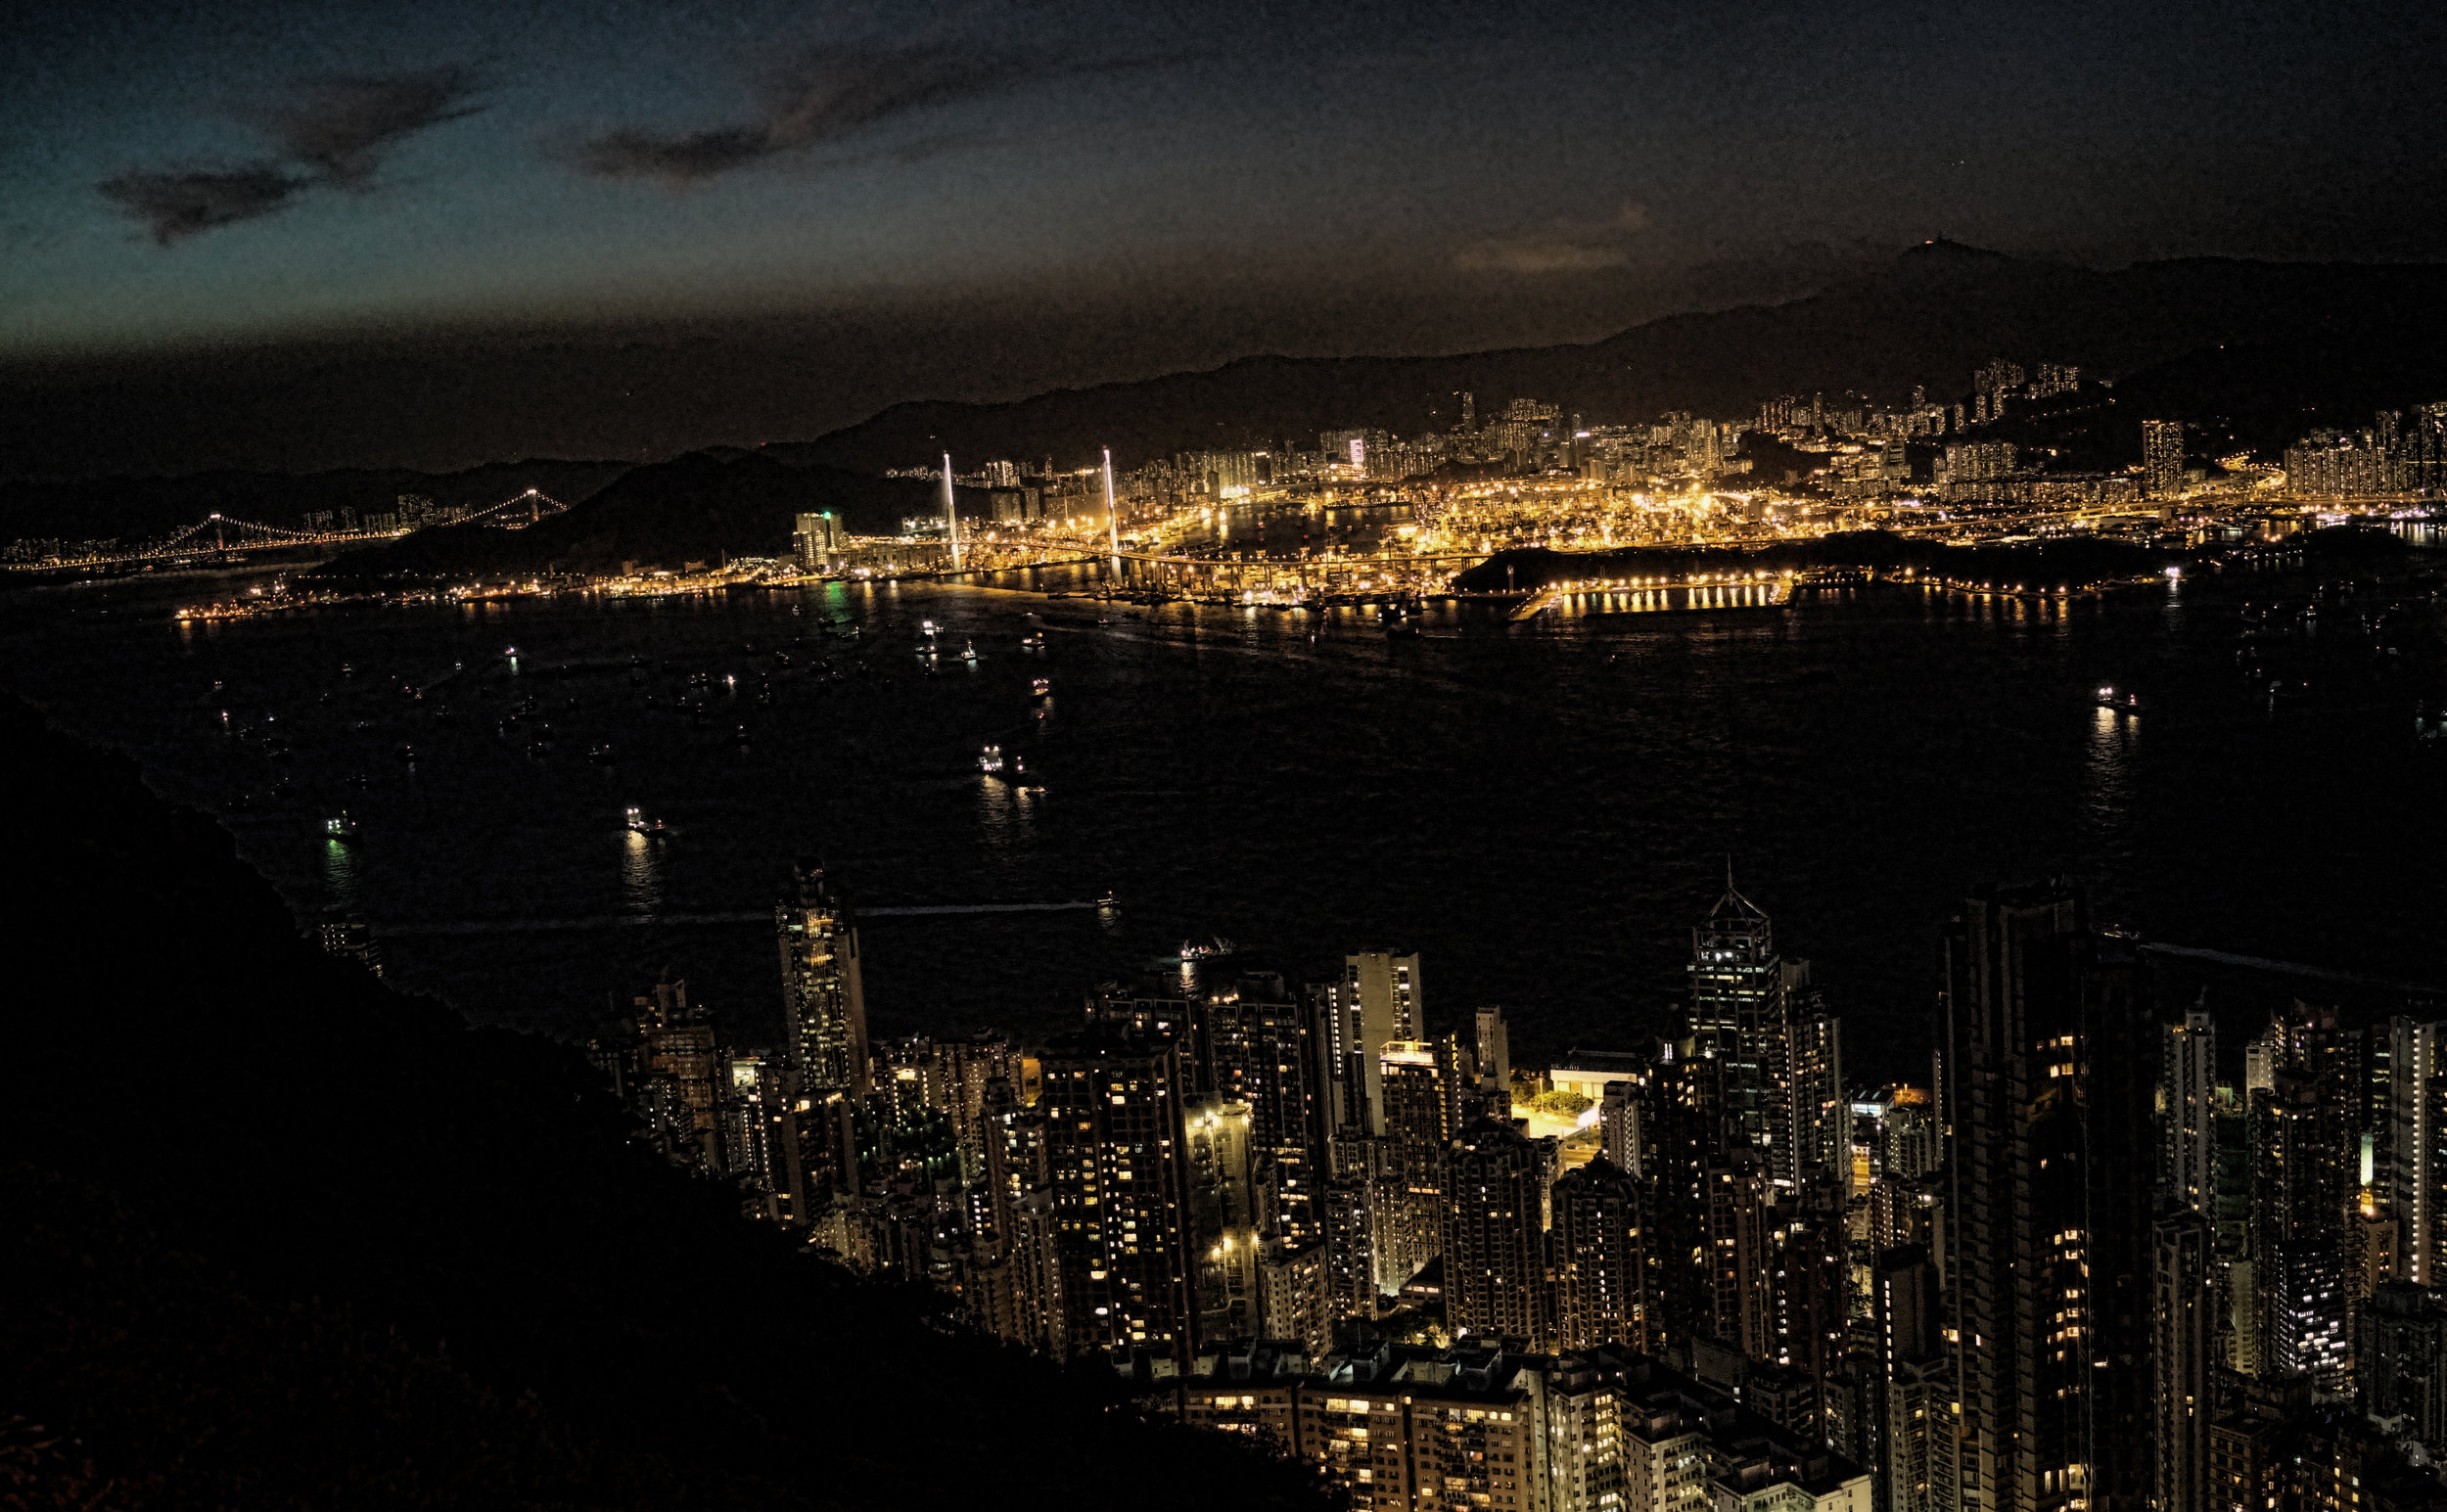 Hong Kong is rather special at night, here is a night shot taken from my spot at the Peak and the big golden glow is the Hong Kong port, the 5th largest in the world....